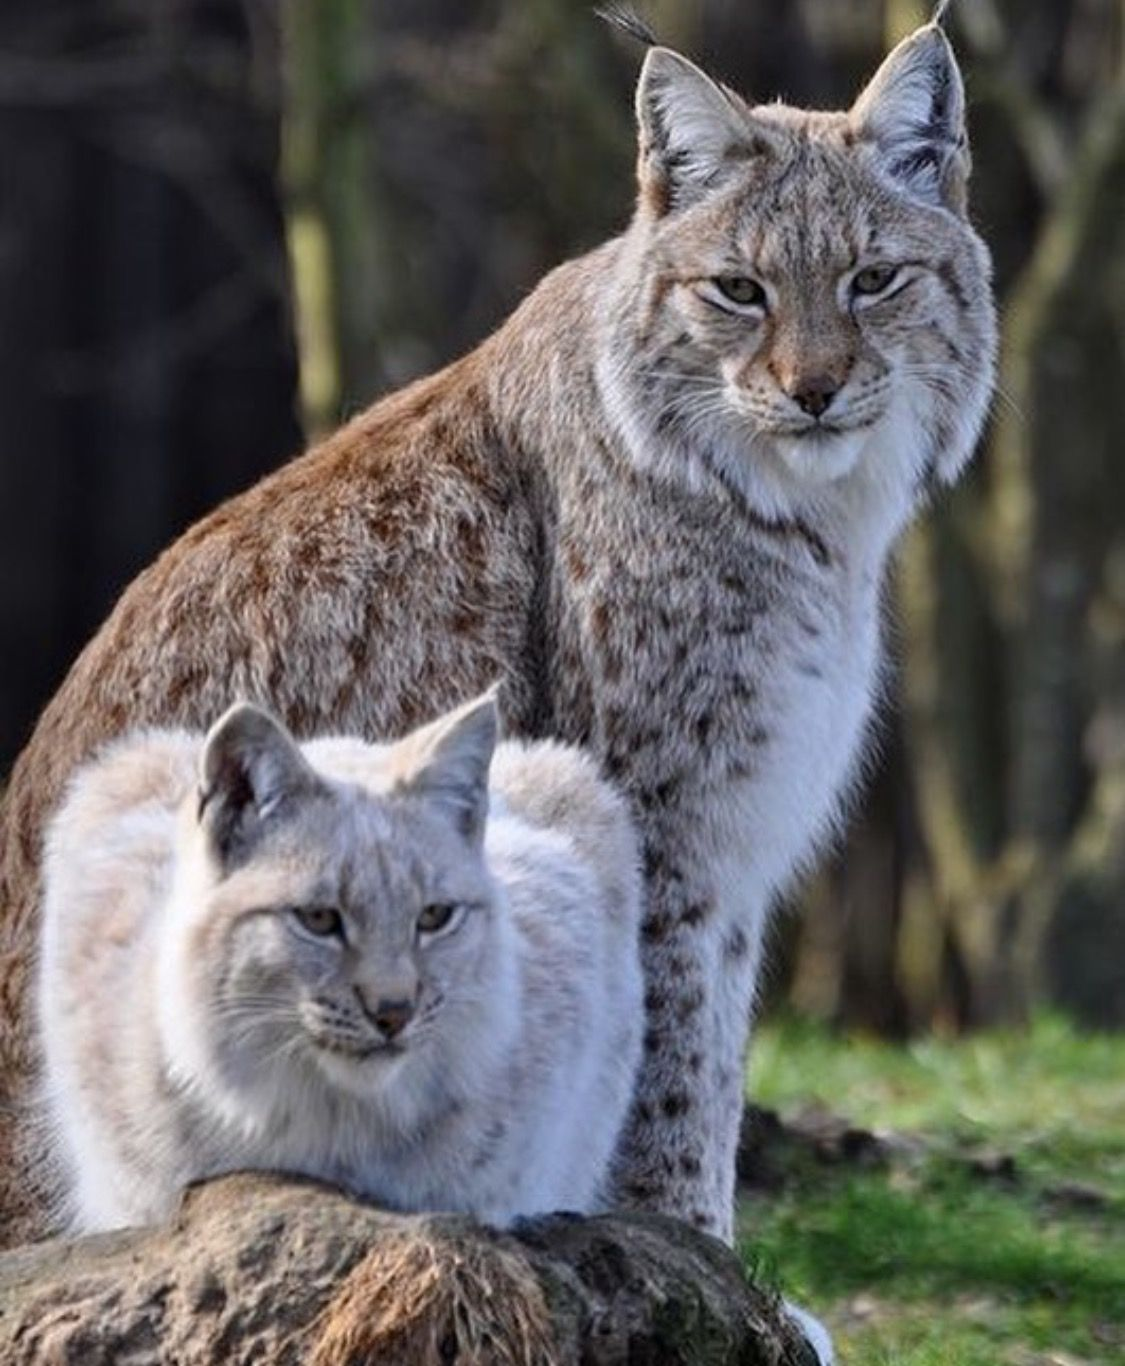 Pin by Beast on cats Eurasian lynx, Cats, Big cats